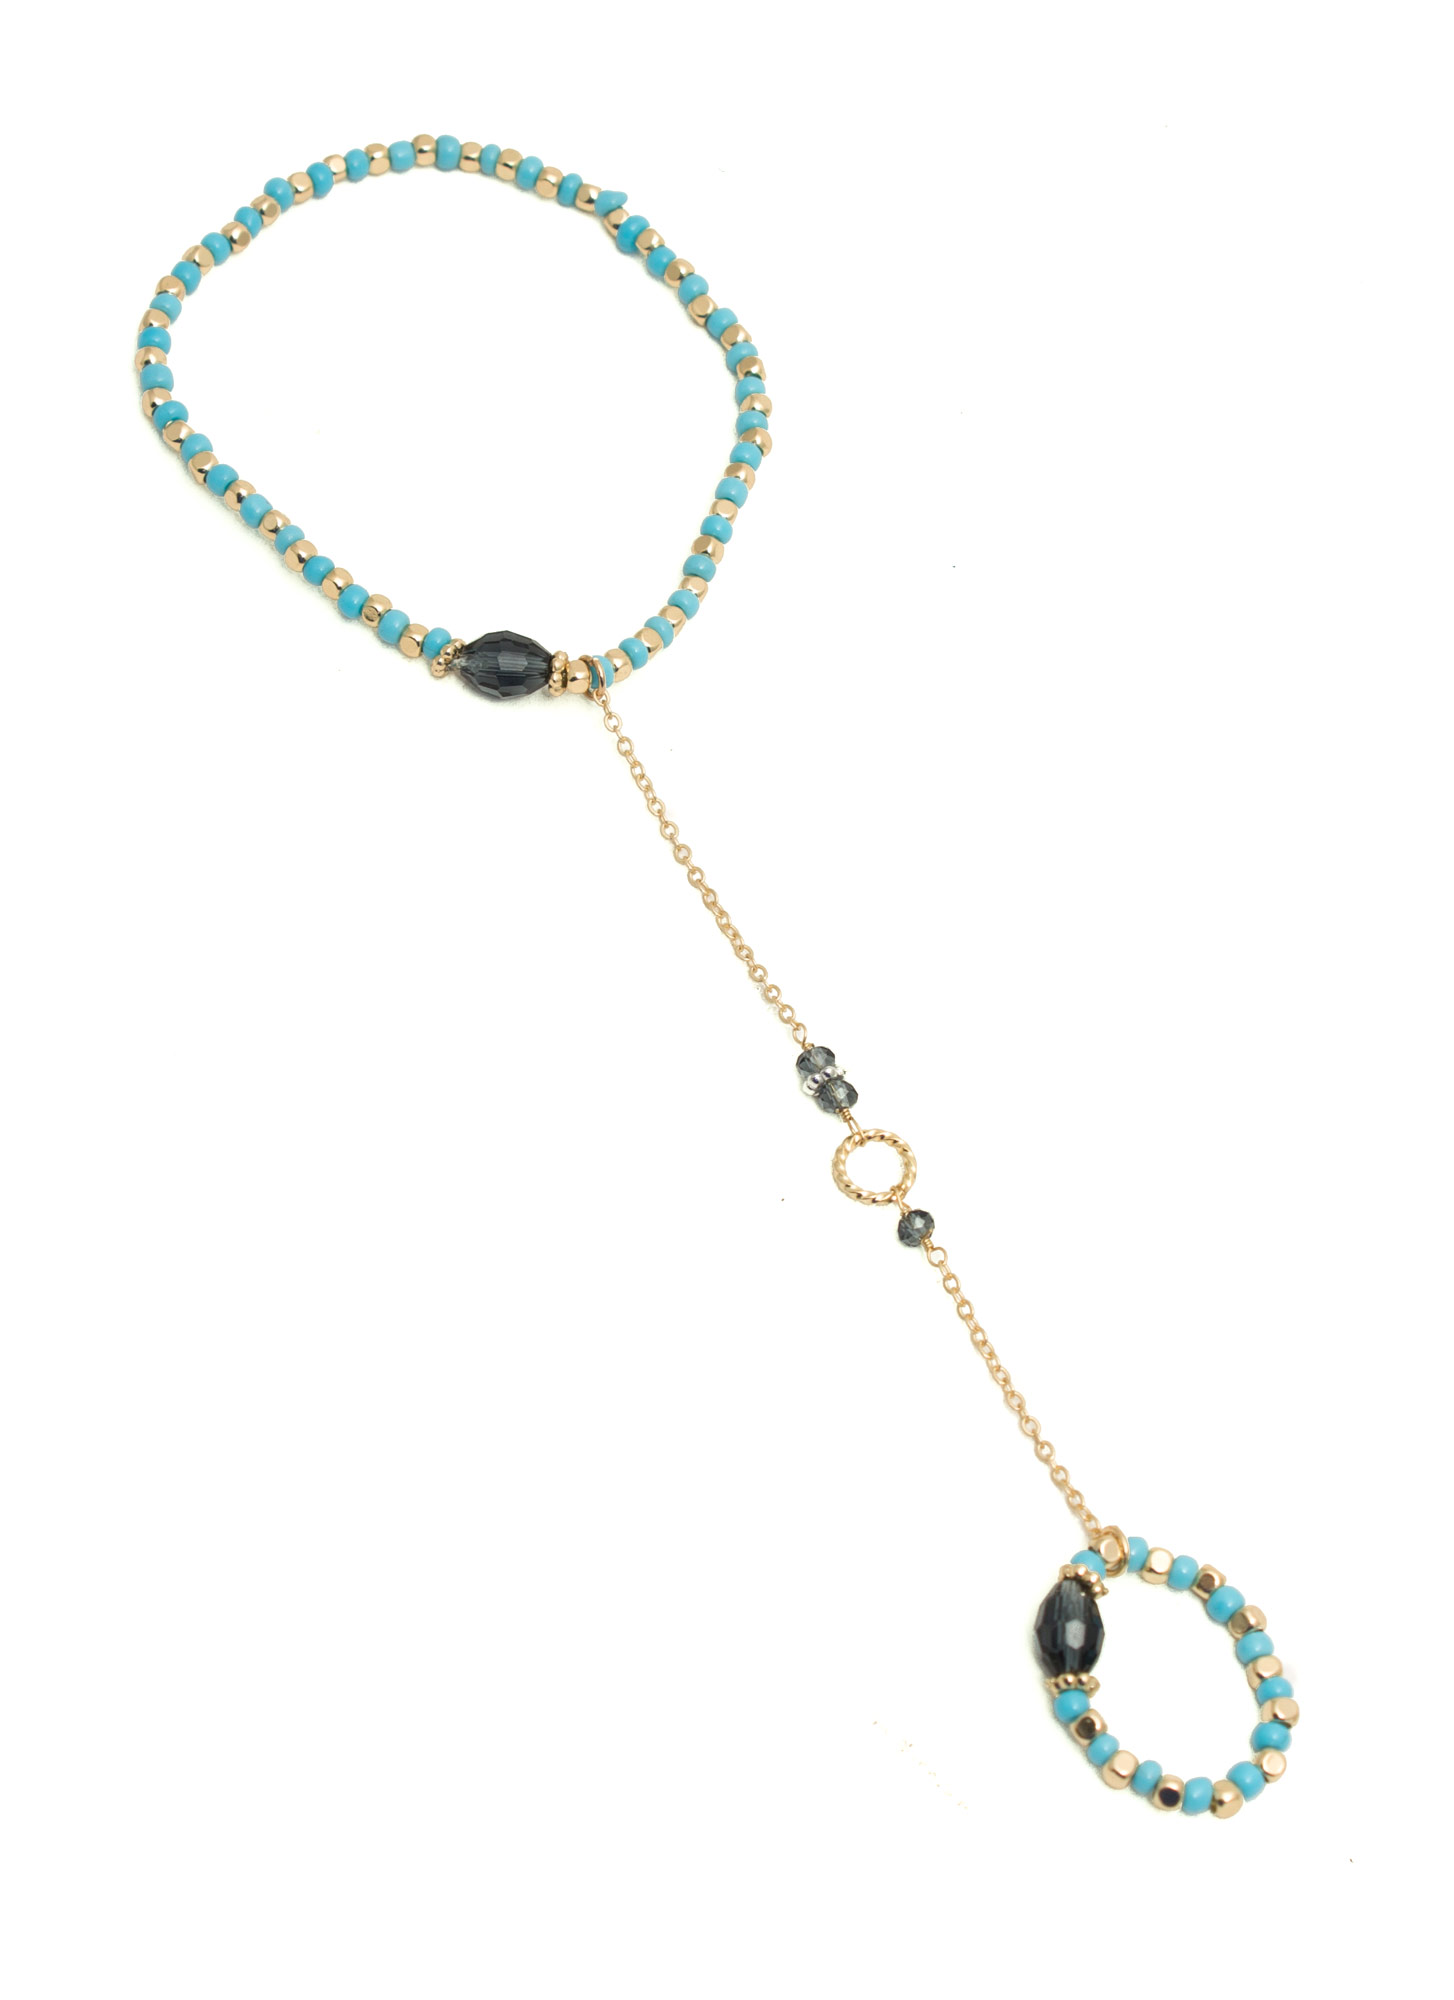 Stretchy Beaded Hoop Hand Bracelet BLUEGOLD